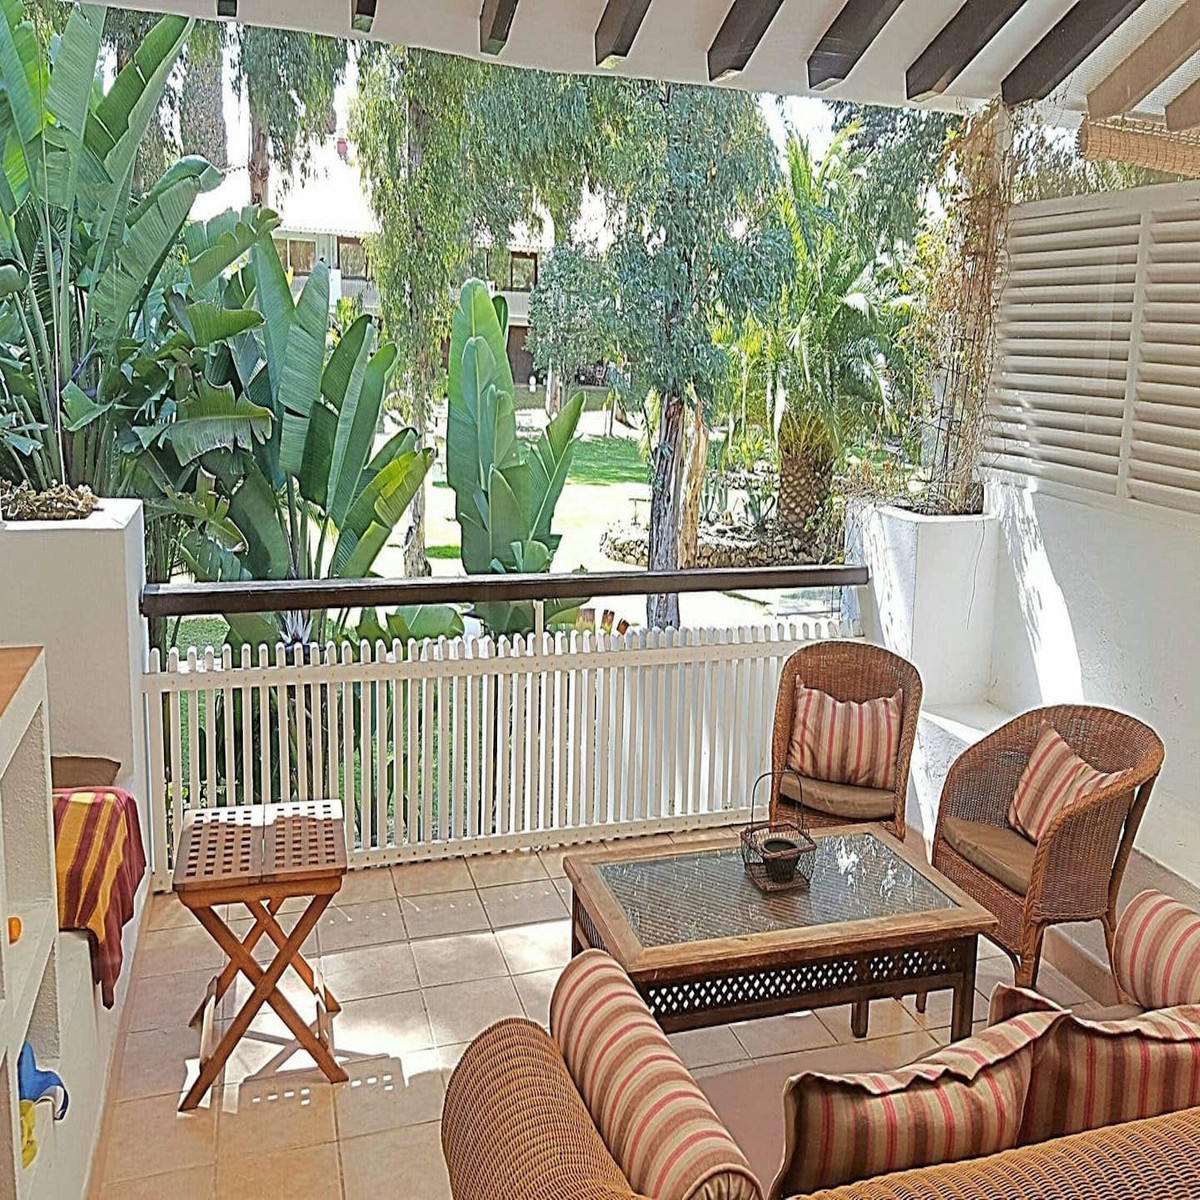 Apartment in Puerto Banus, fully equipped with two bedrooms and two bathrooms. Spacious with a large,Spain